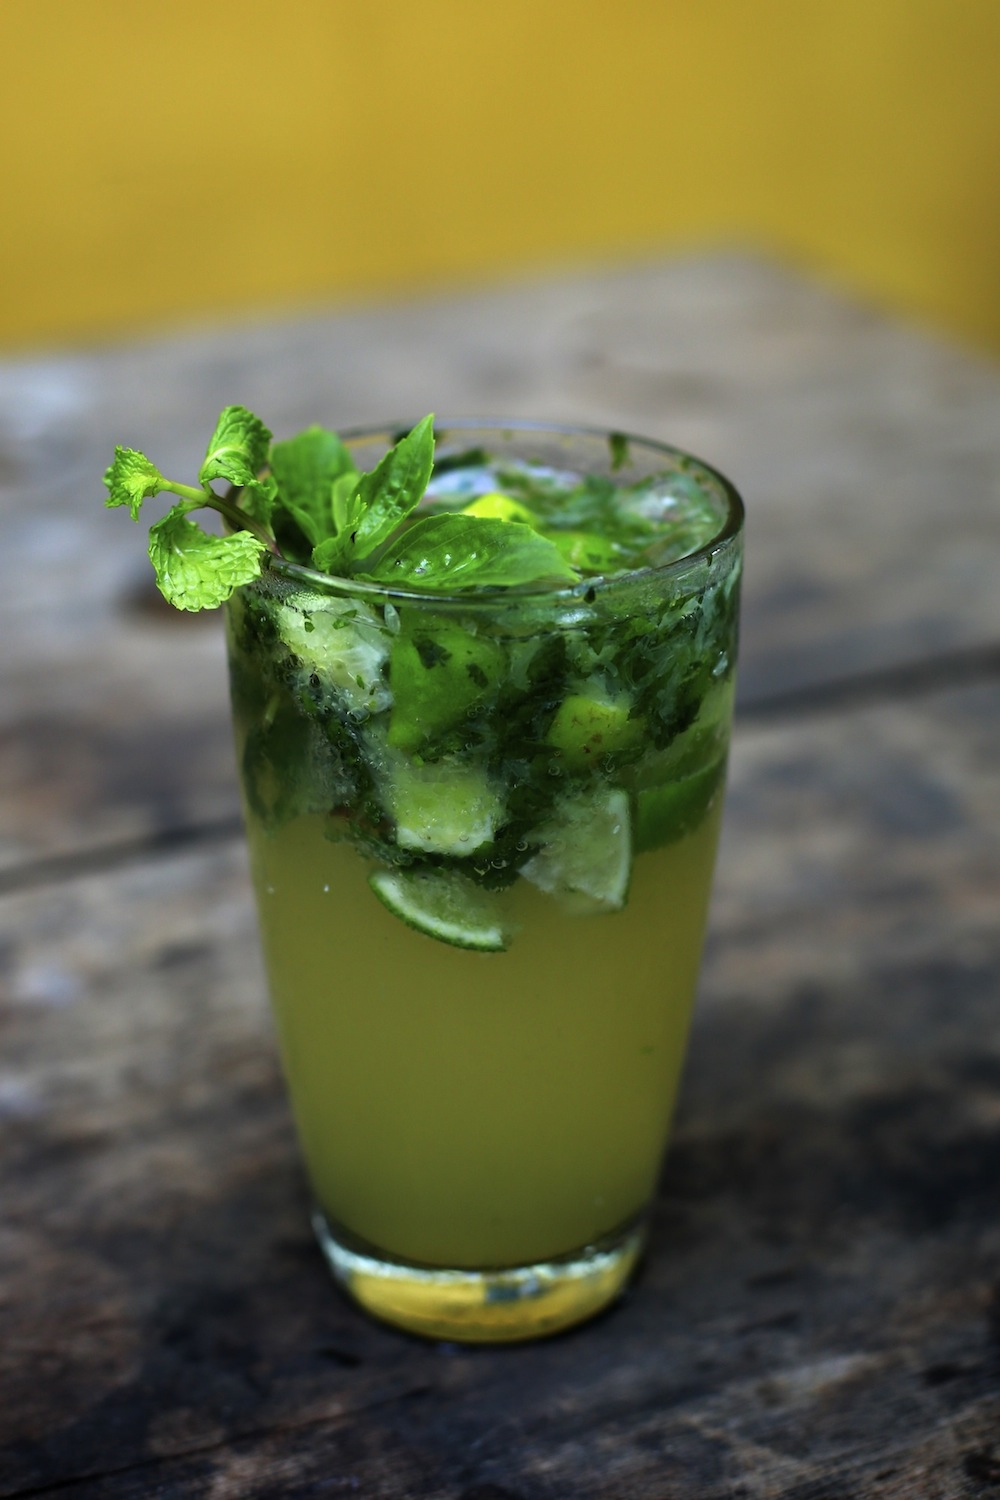 The tepui mojito. Photo by Mona Simon